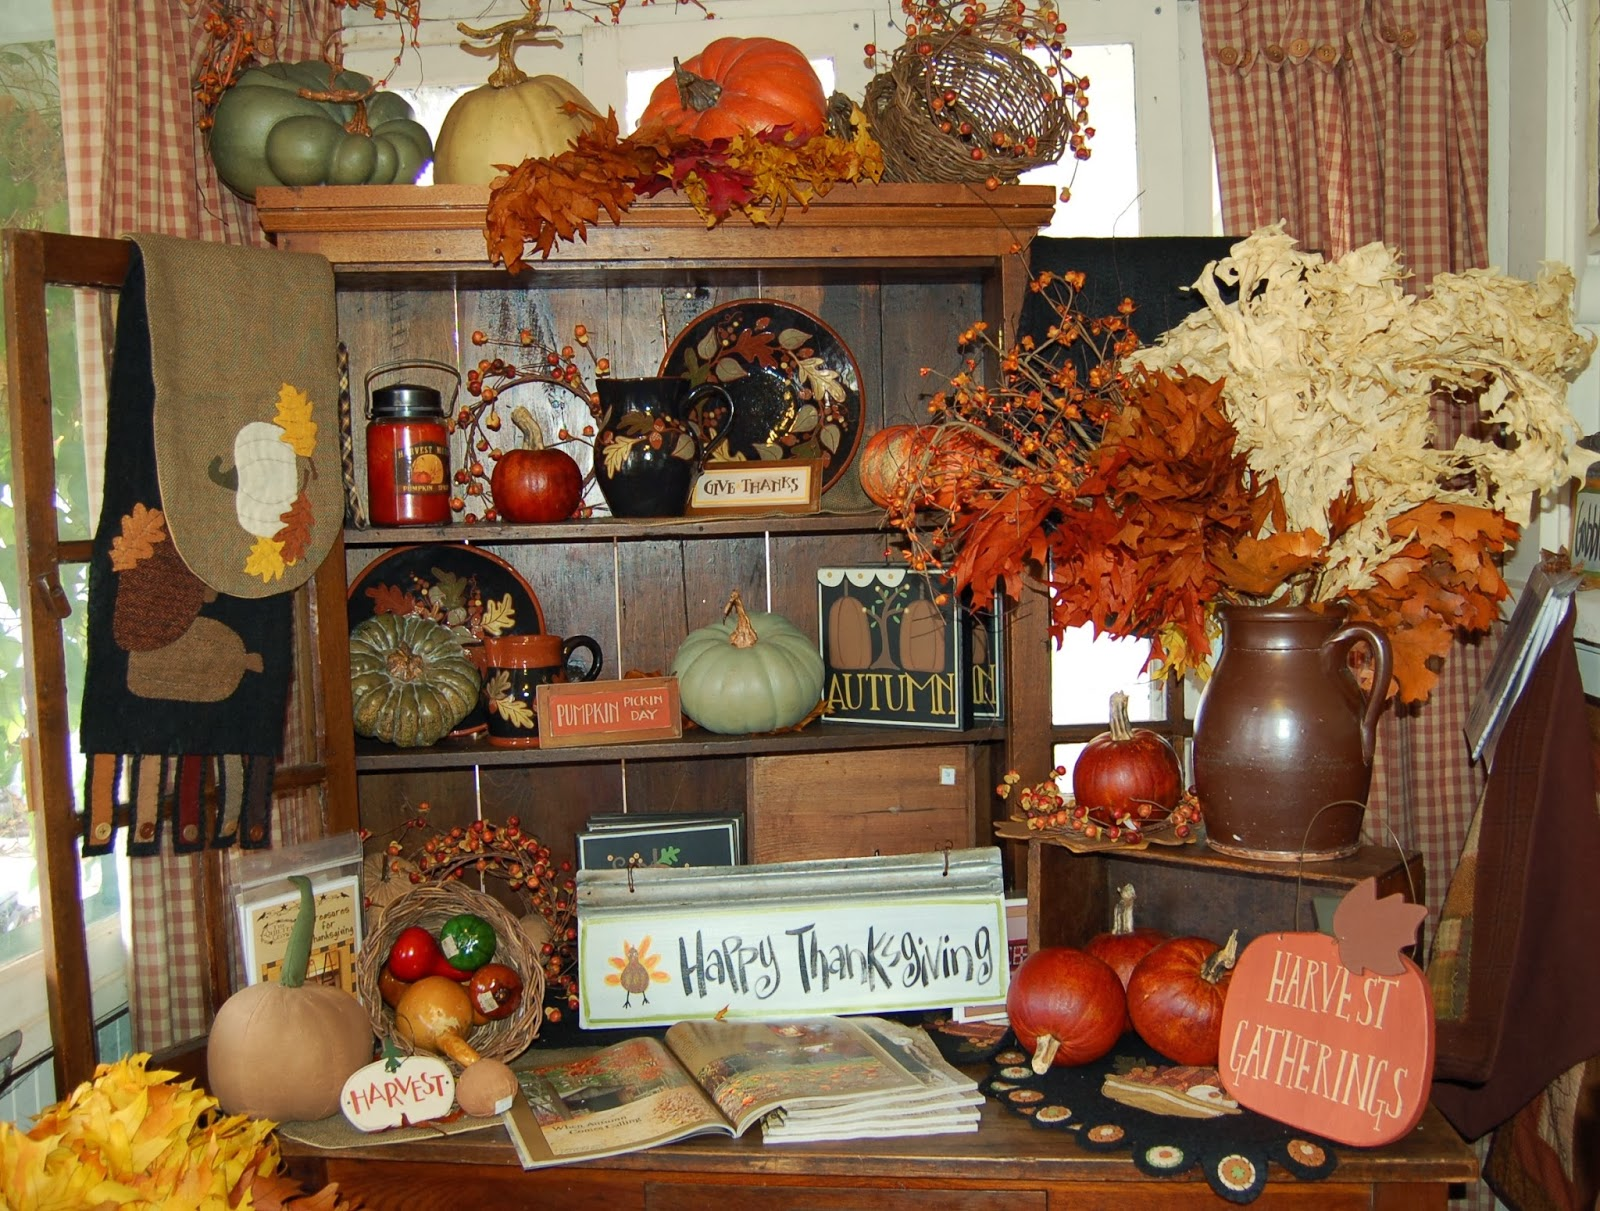 Happy Thanksgiving Country Images >> The Country Loft Happy Thanksgiving From The Country Loft